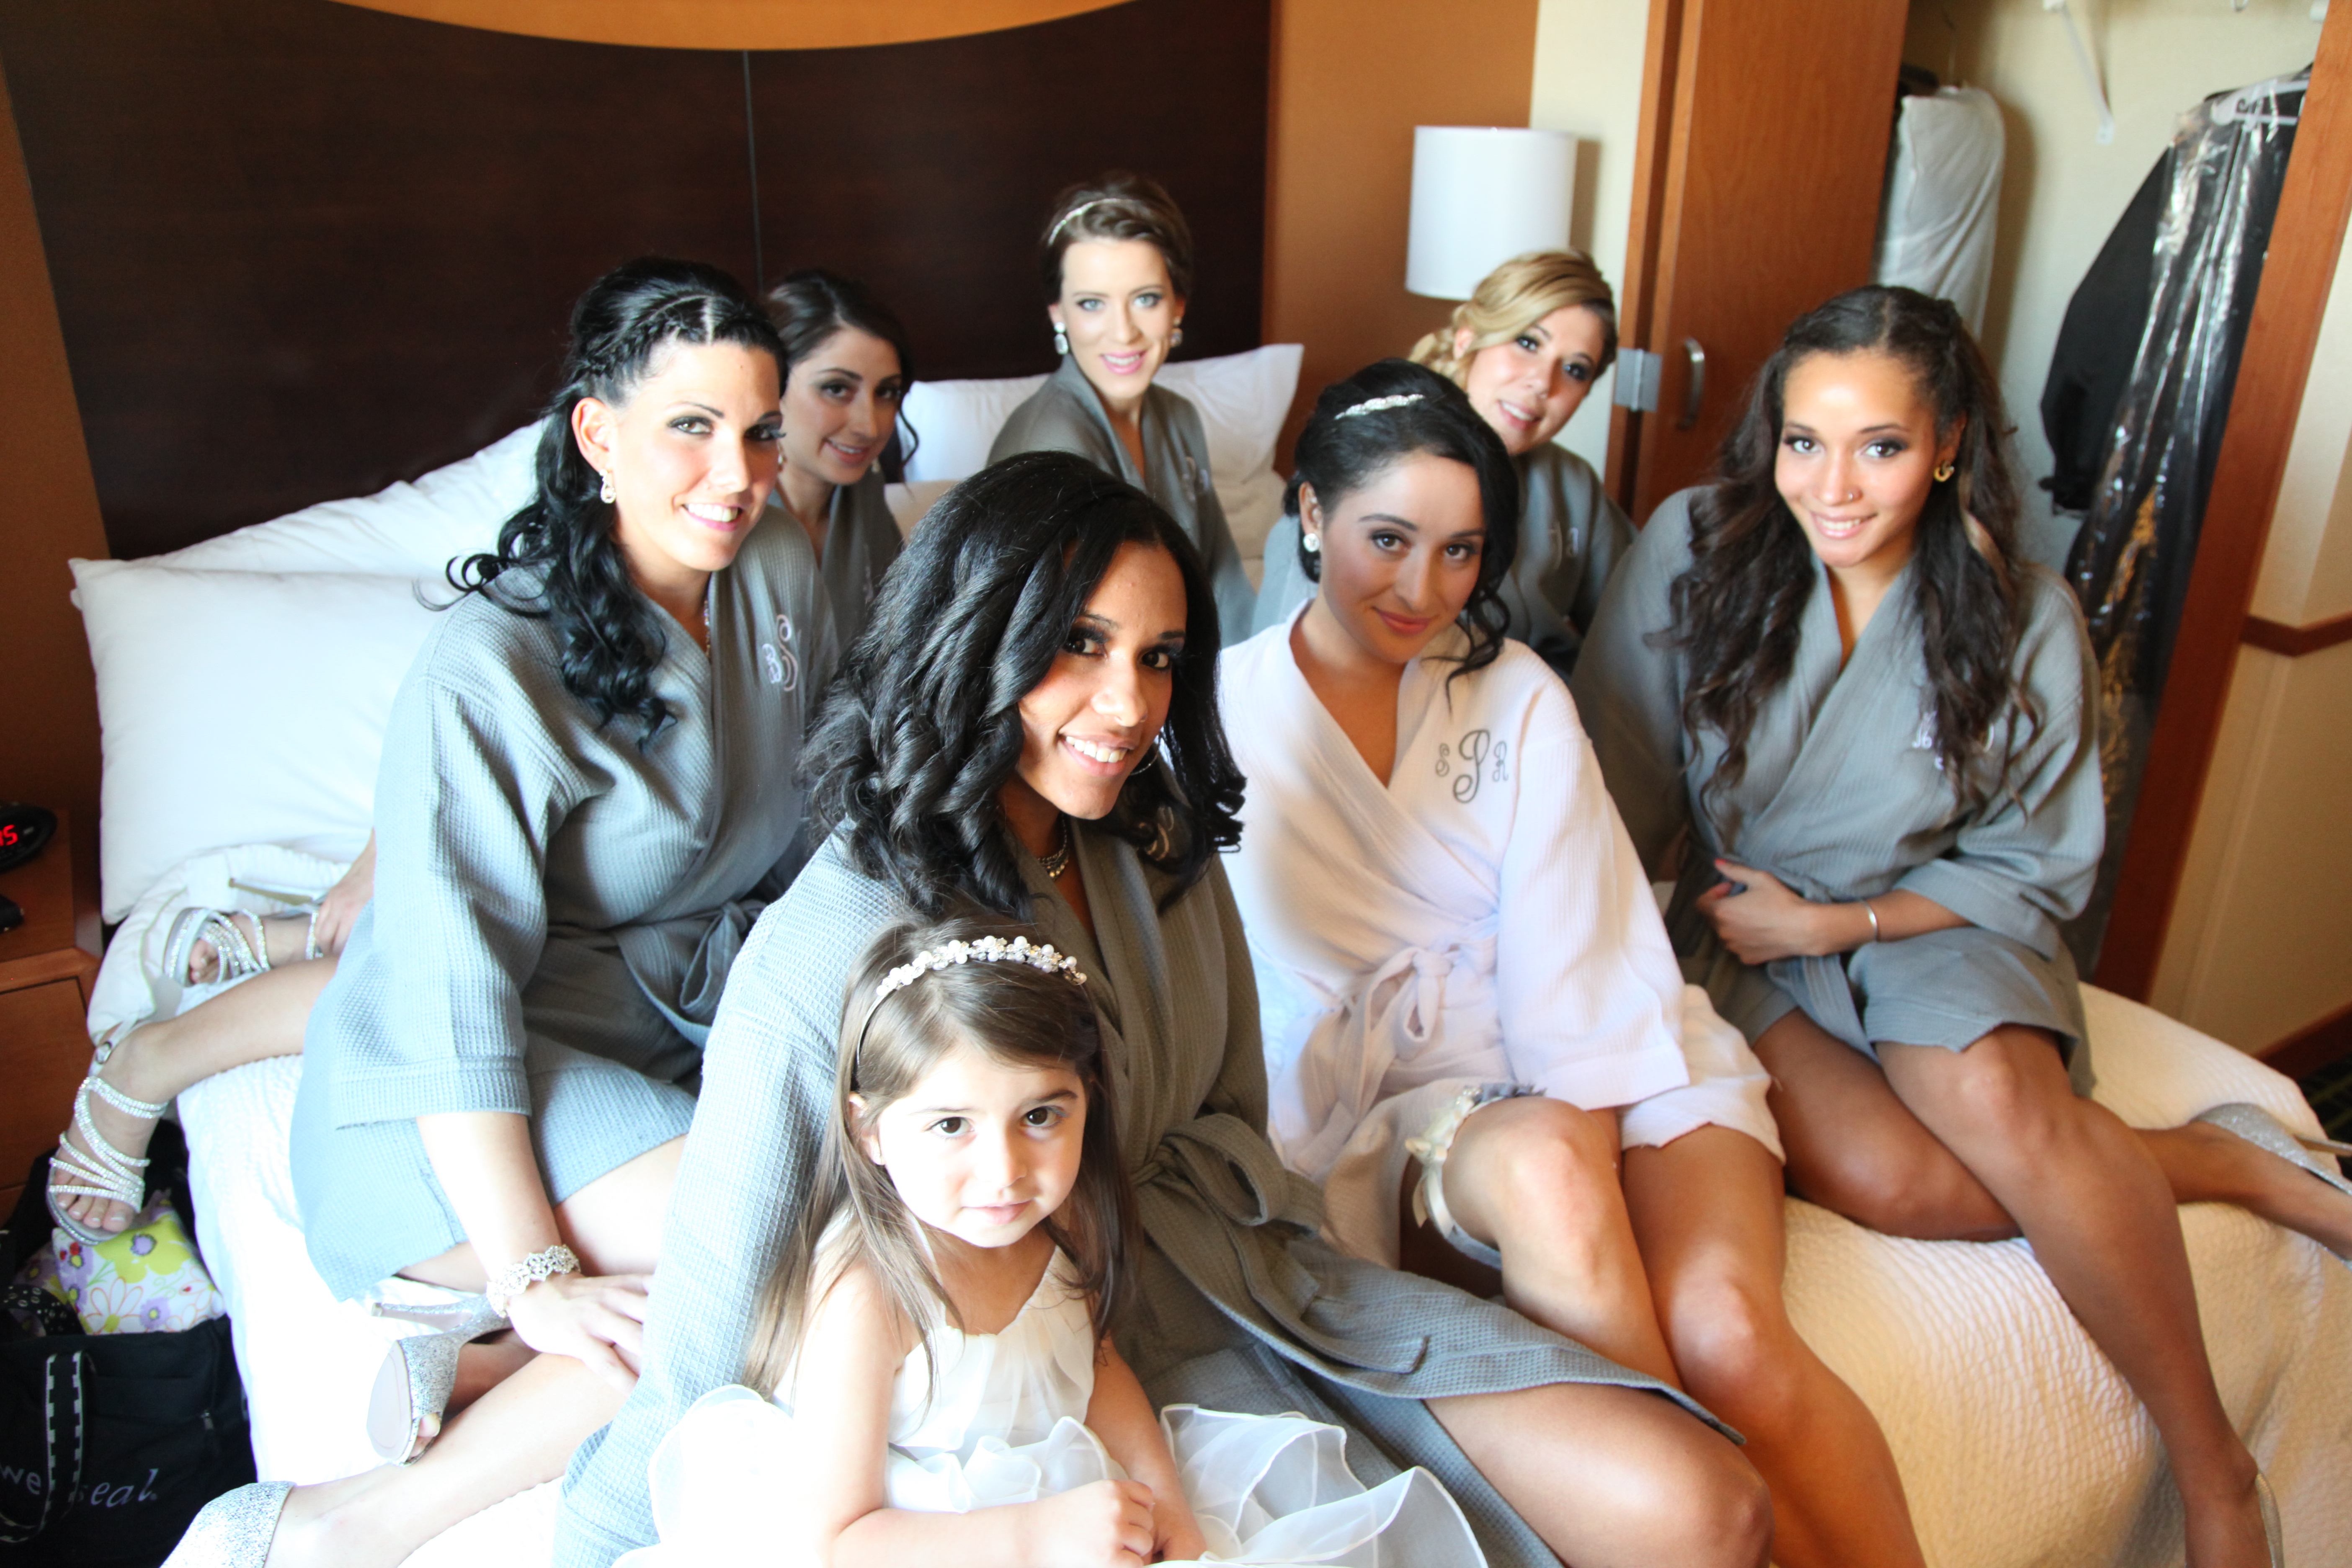 The Bridesmaids on the bed